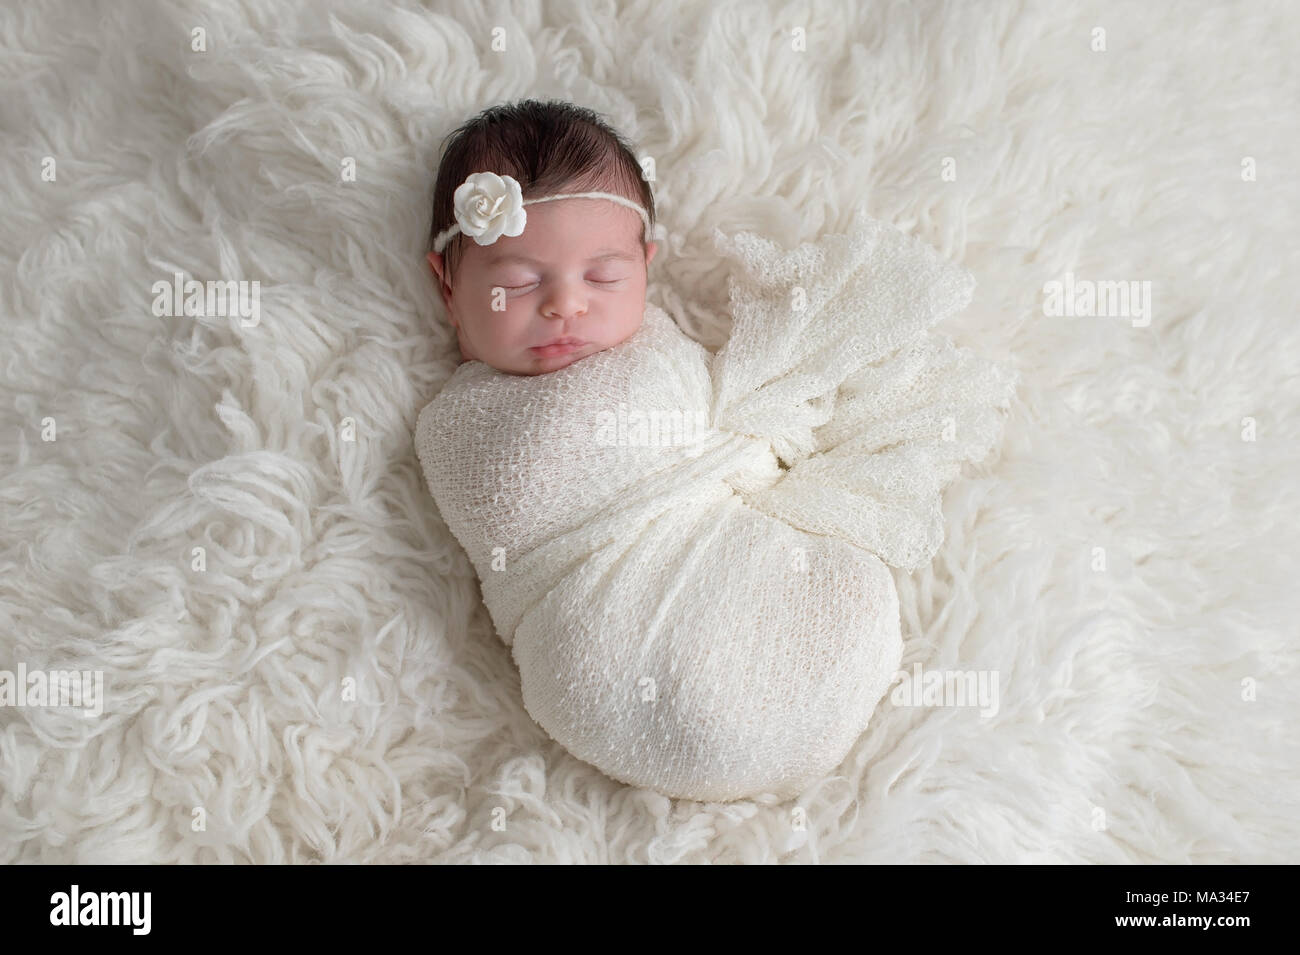 Sleeping Ten Day Old Newborn Baby Girl Swaddled In A White Wrap